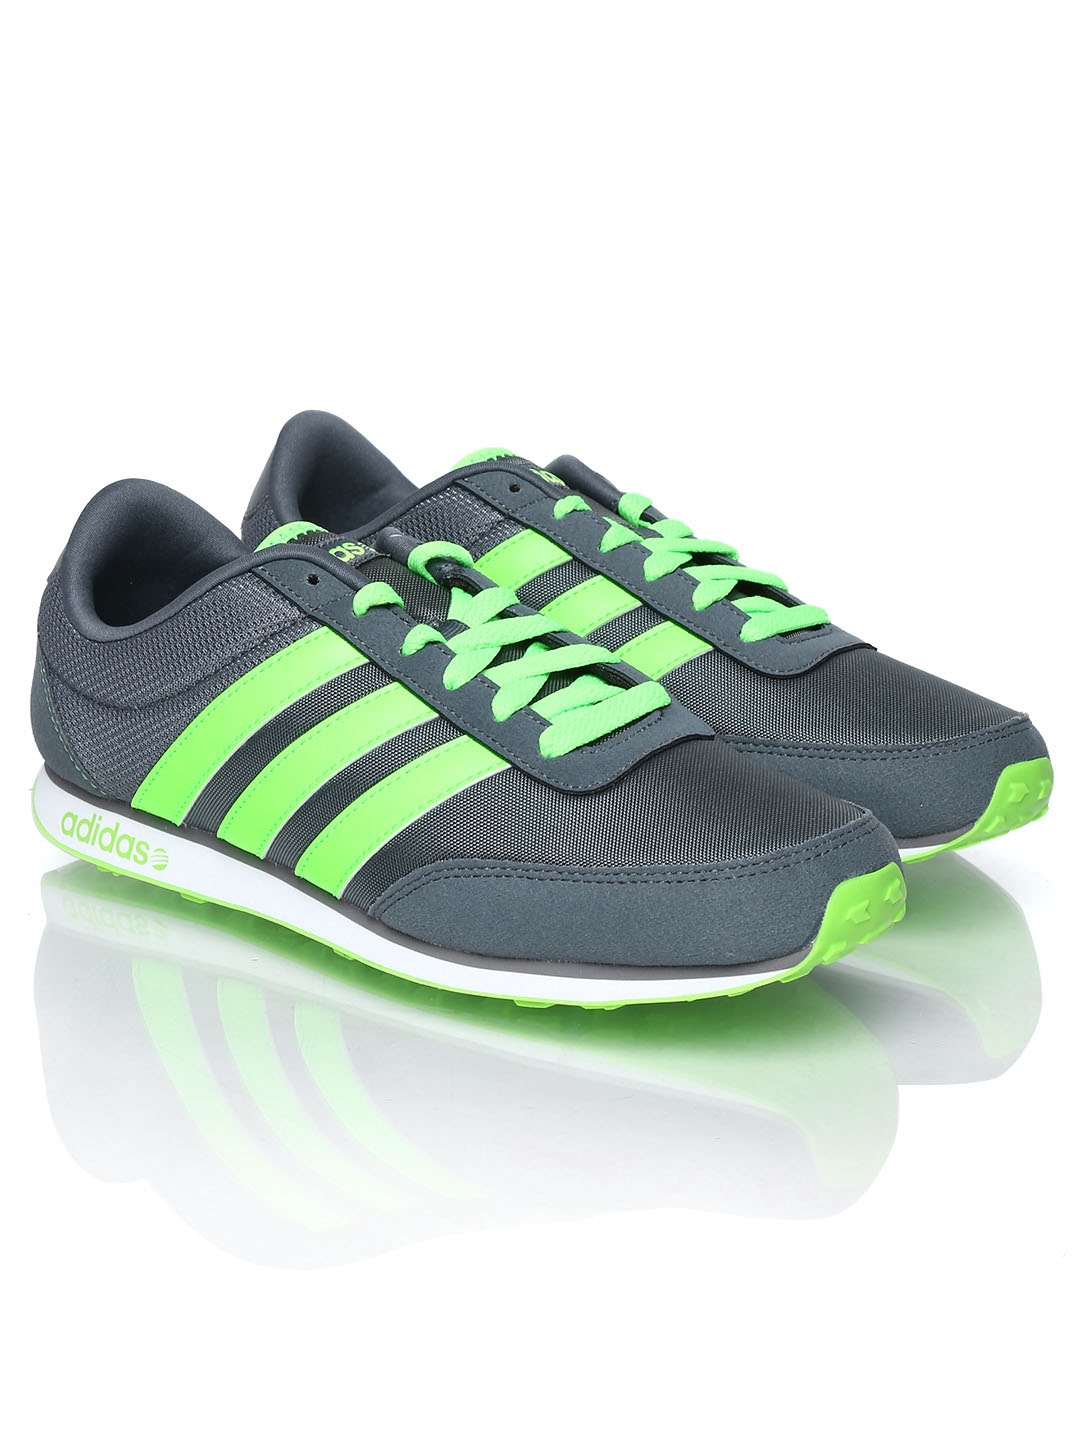 Adidas Shoes Neon Green